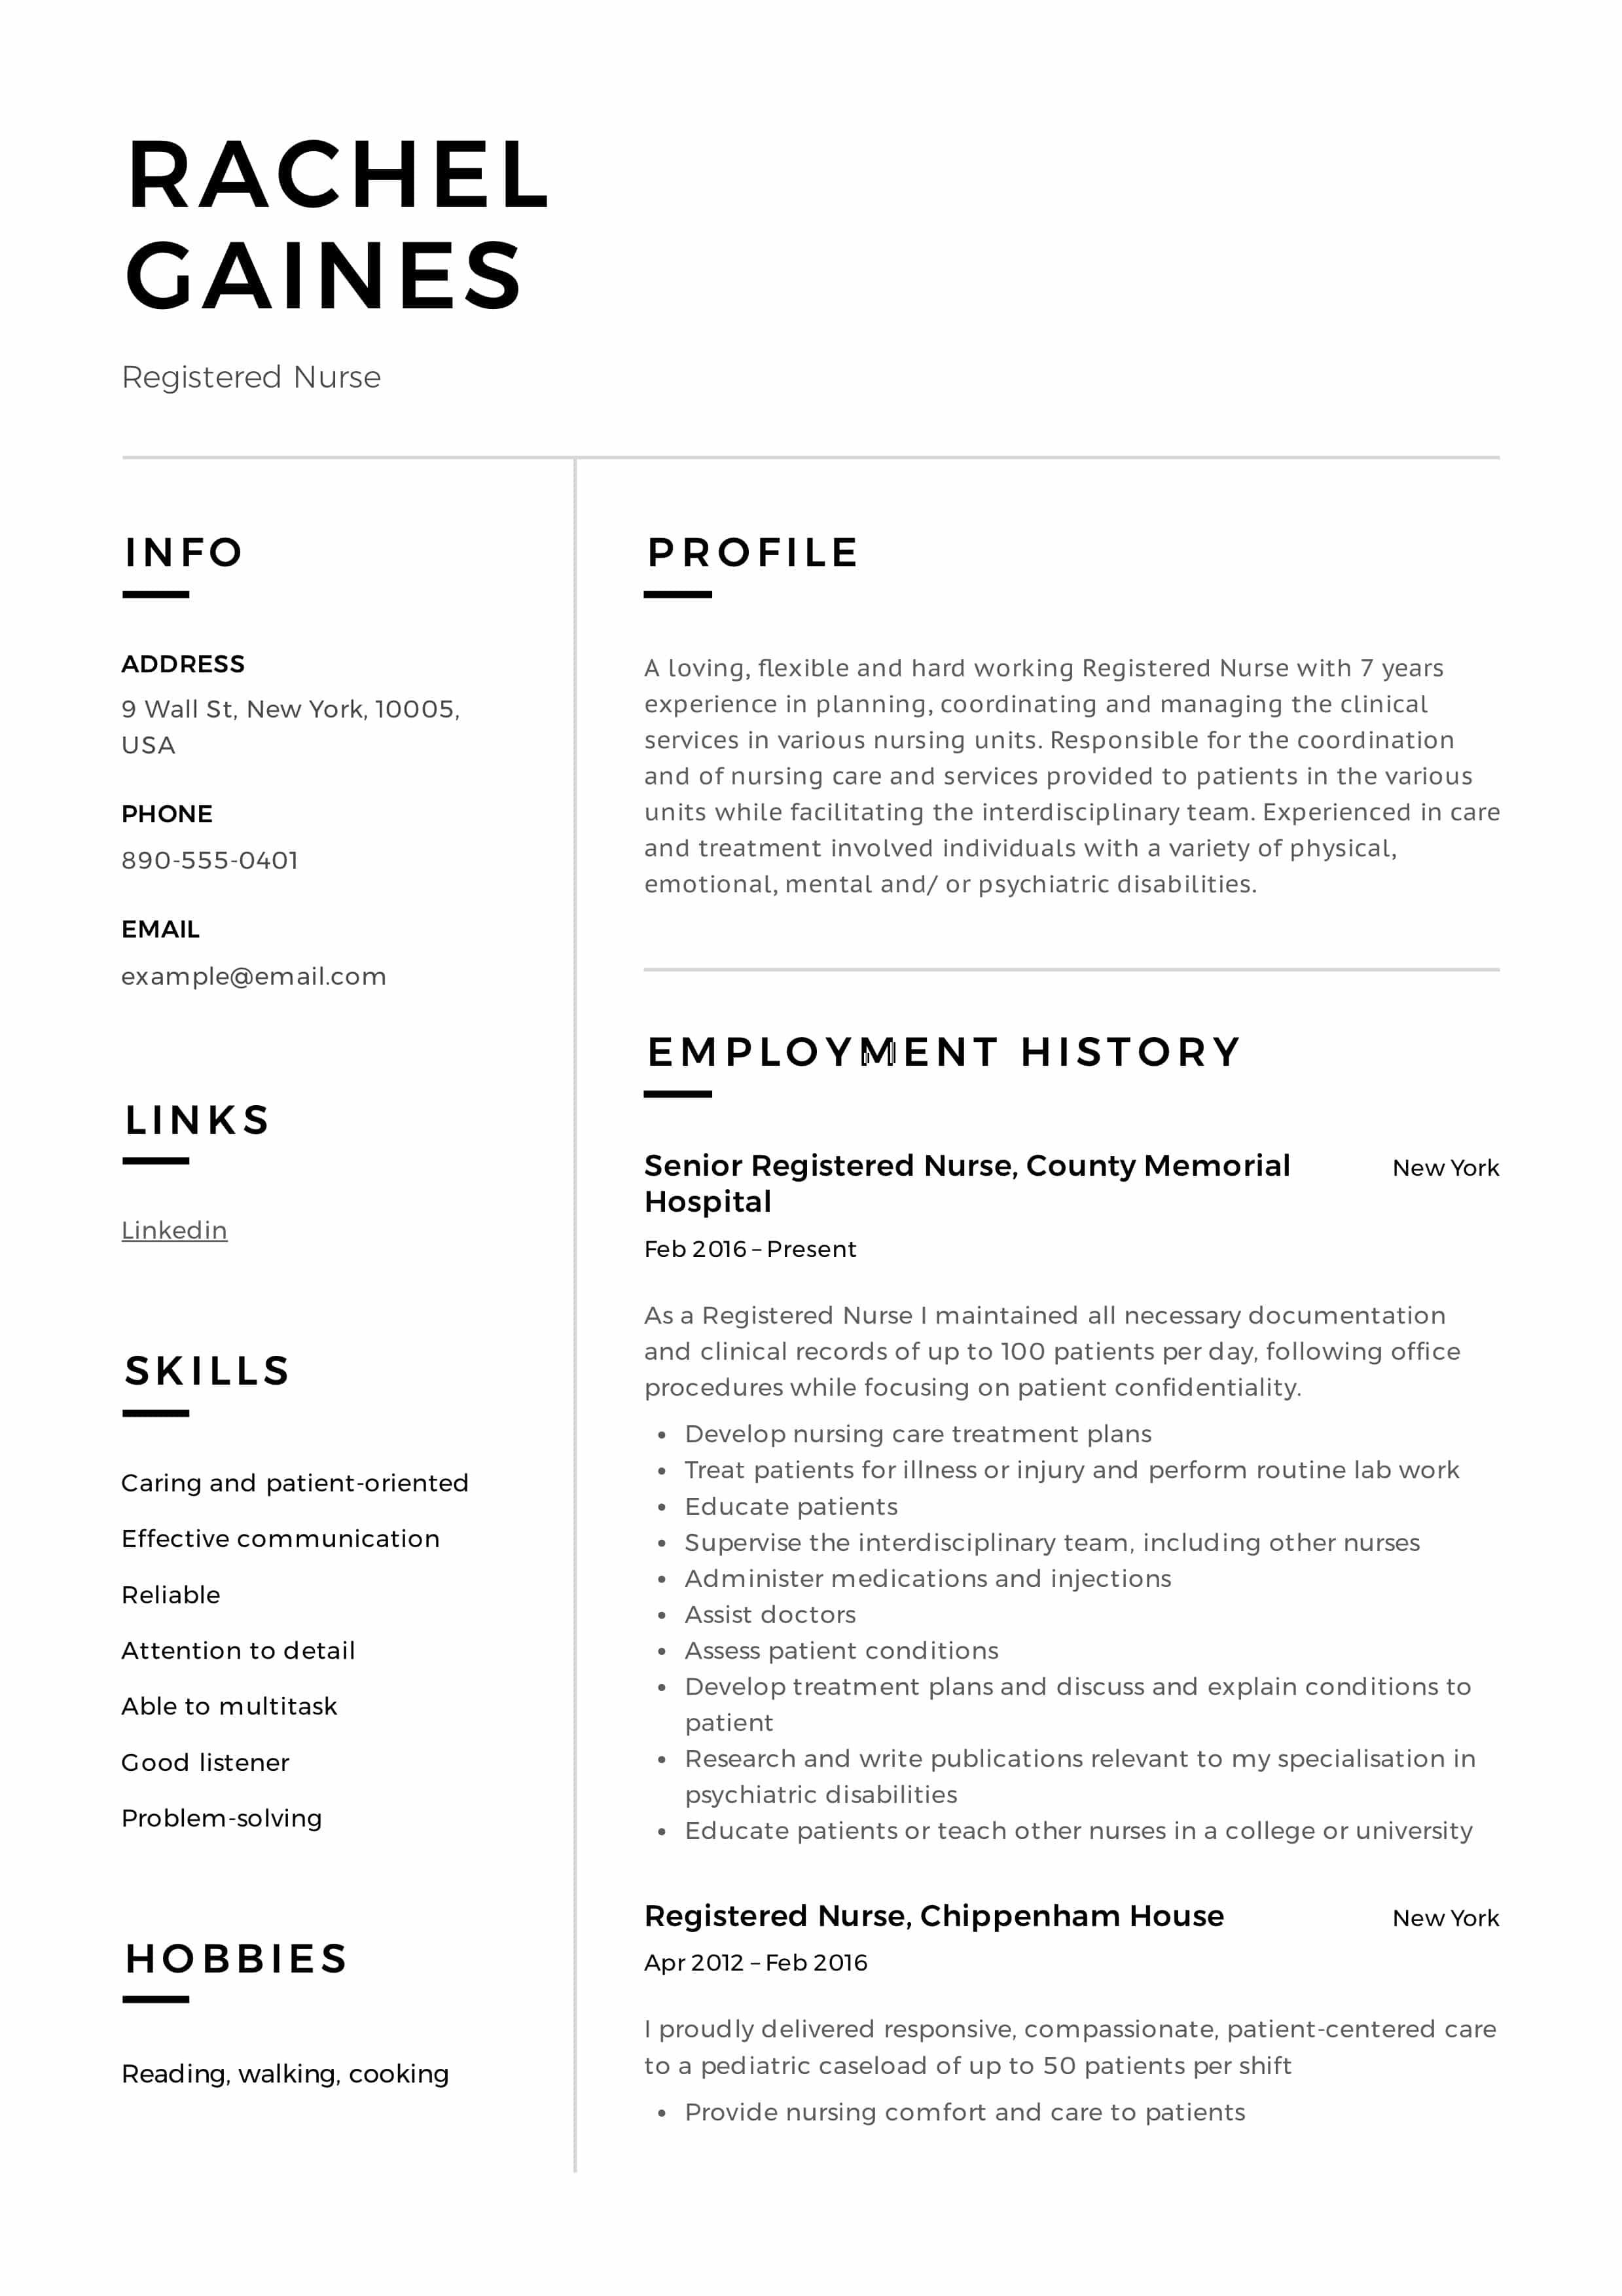 008 Impressive Resume Template For Nurse Inspiration  Sample Nursing Assistant With No Experience Rn' FreeFull